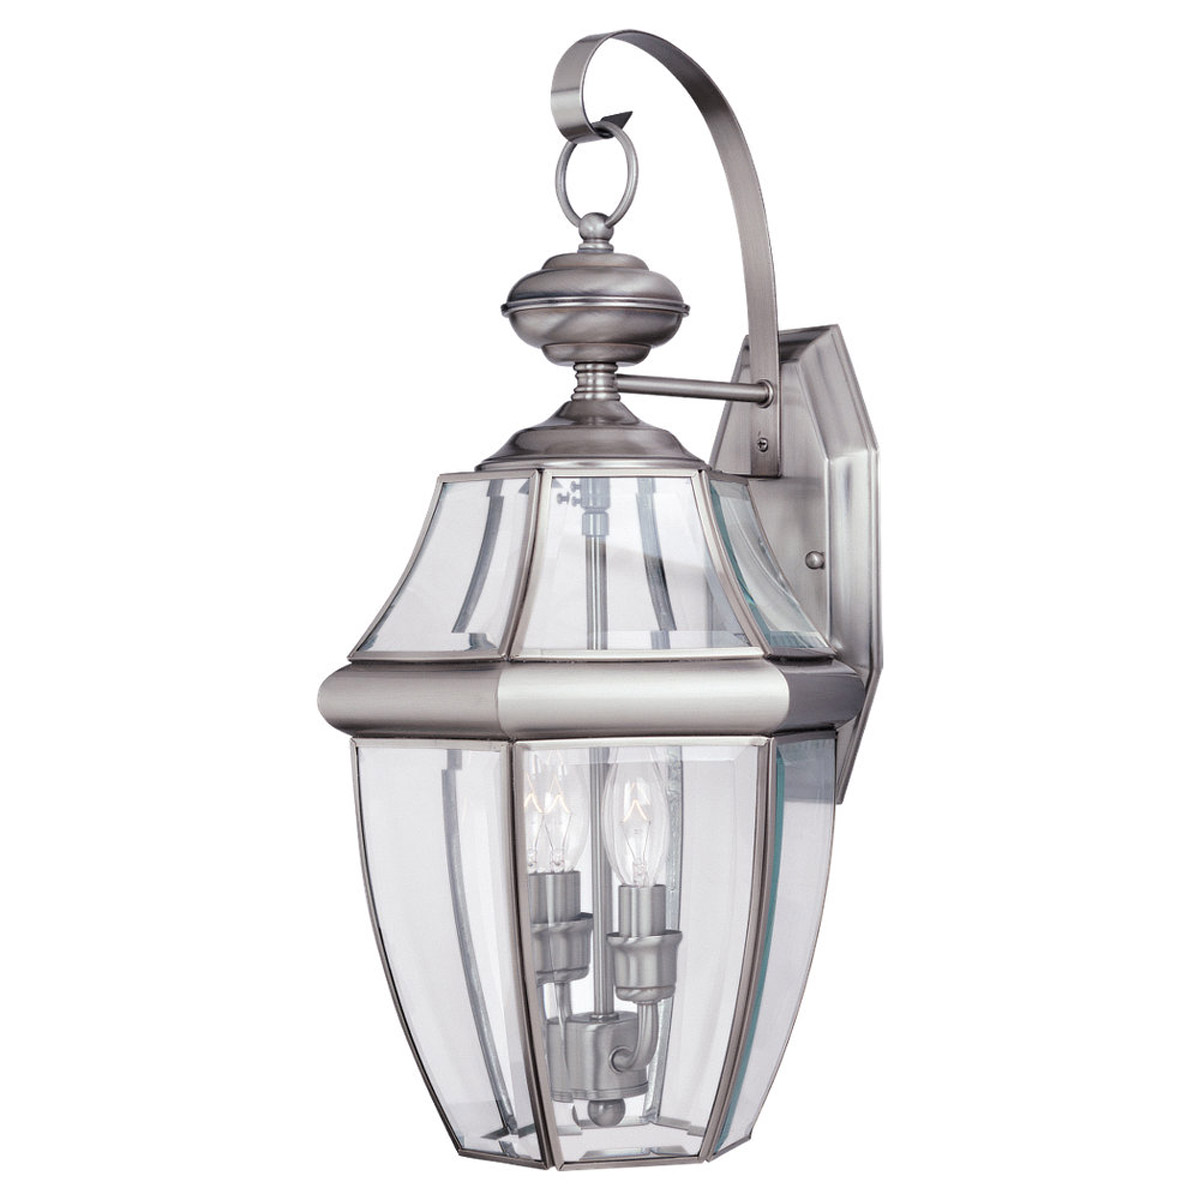 Sea Gull Lighting Lancaster 2 Light Outdoor Wall Lantern in Antique Brushed Nickel 8039-965